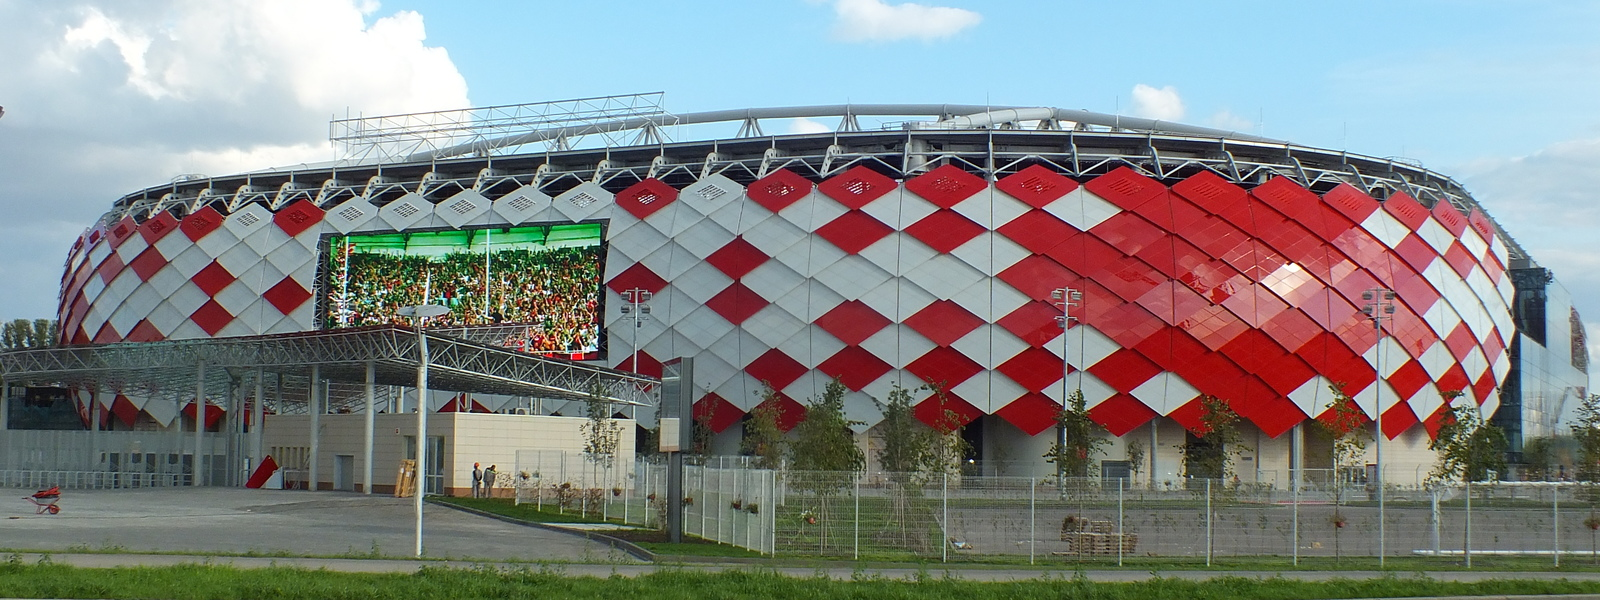 Very big spartak stadium  otkrytiye arena   23 august 2014